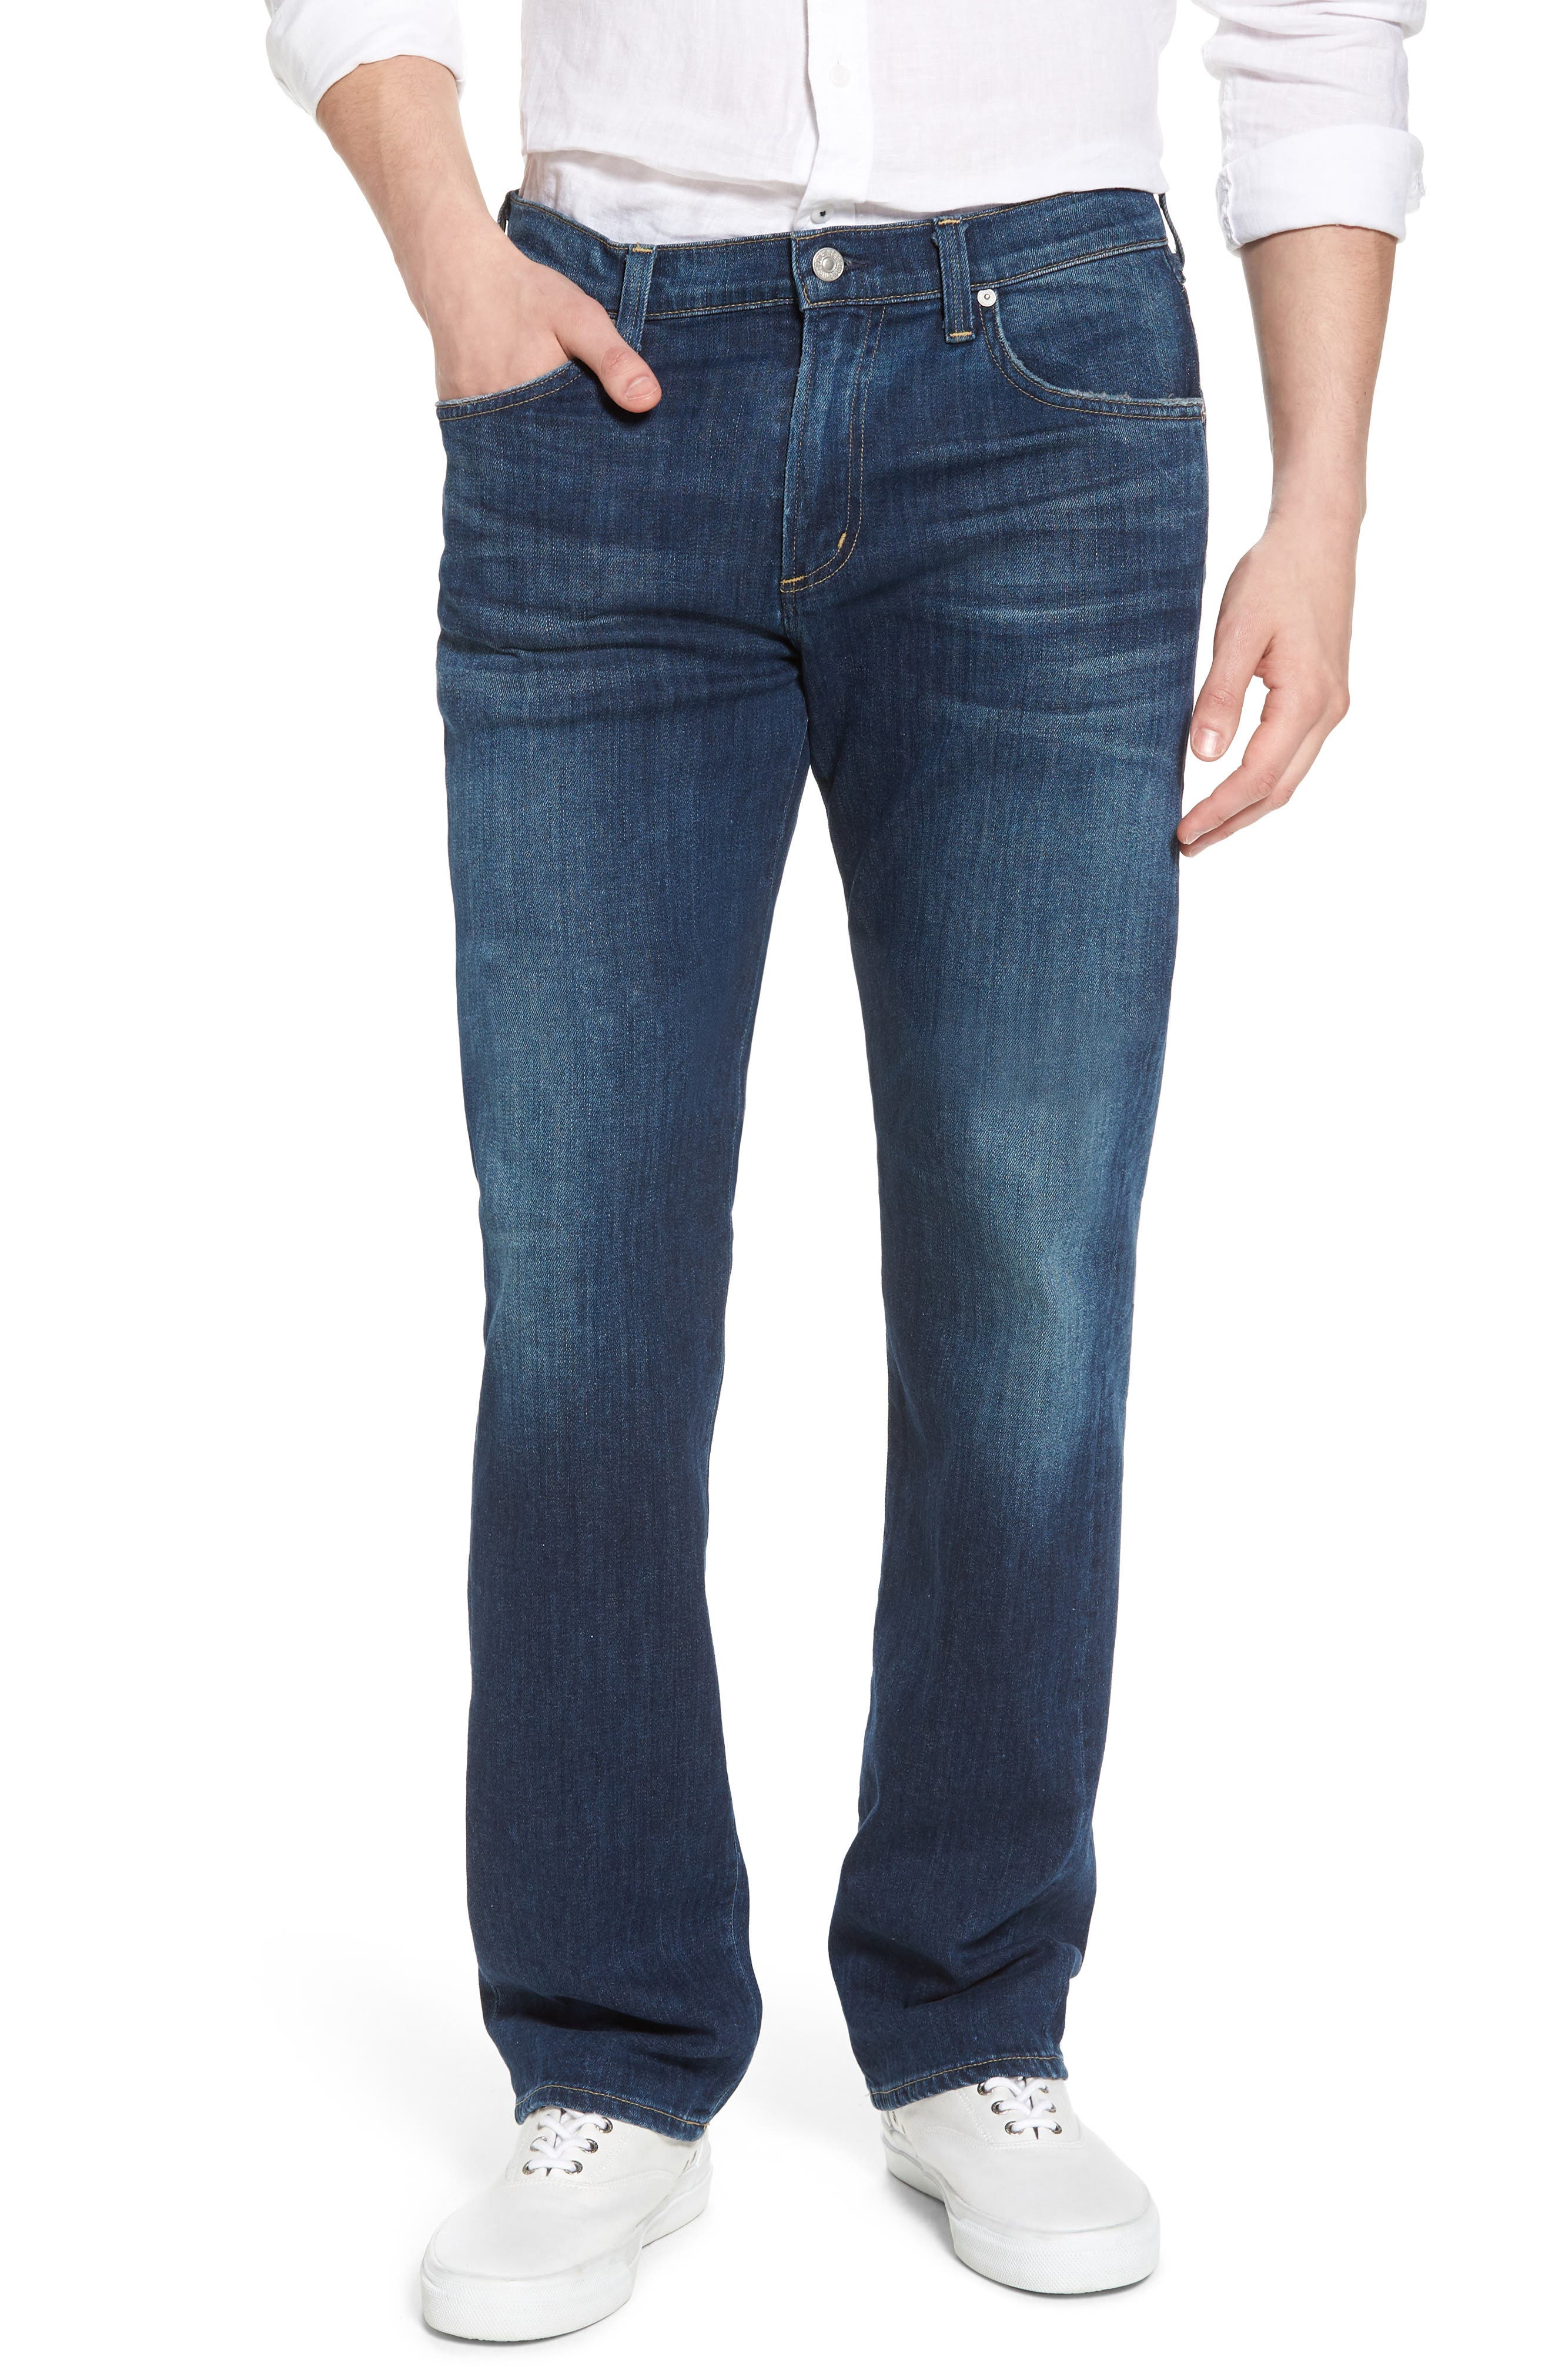 Sid Straight Leg Jeans,                             Main thumbnail 1, color,                             464